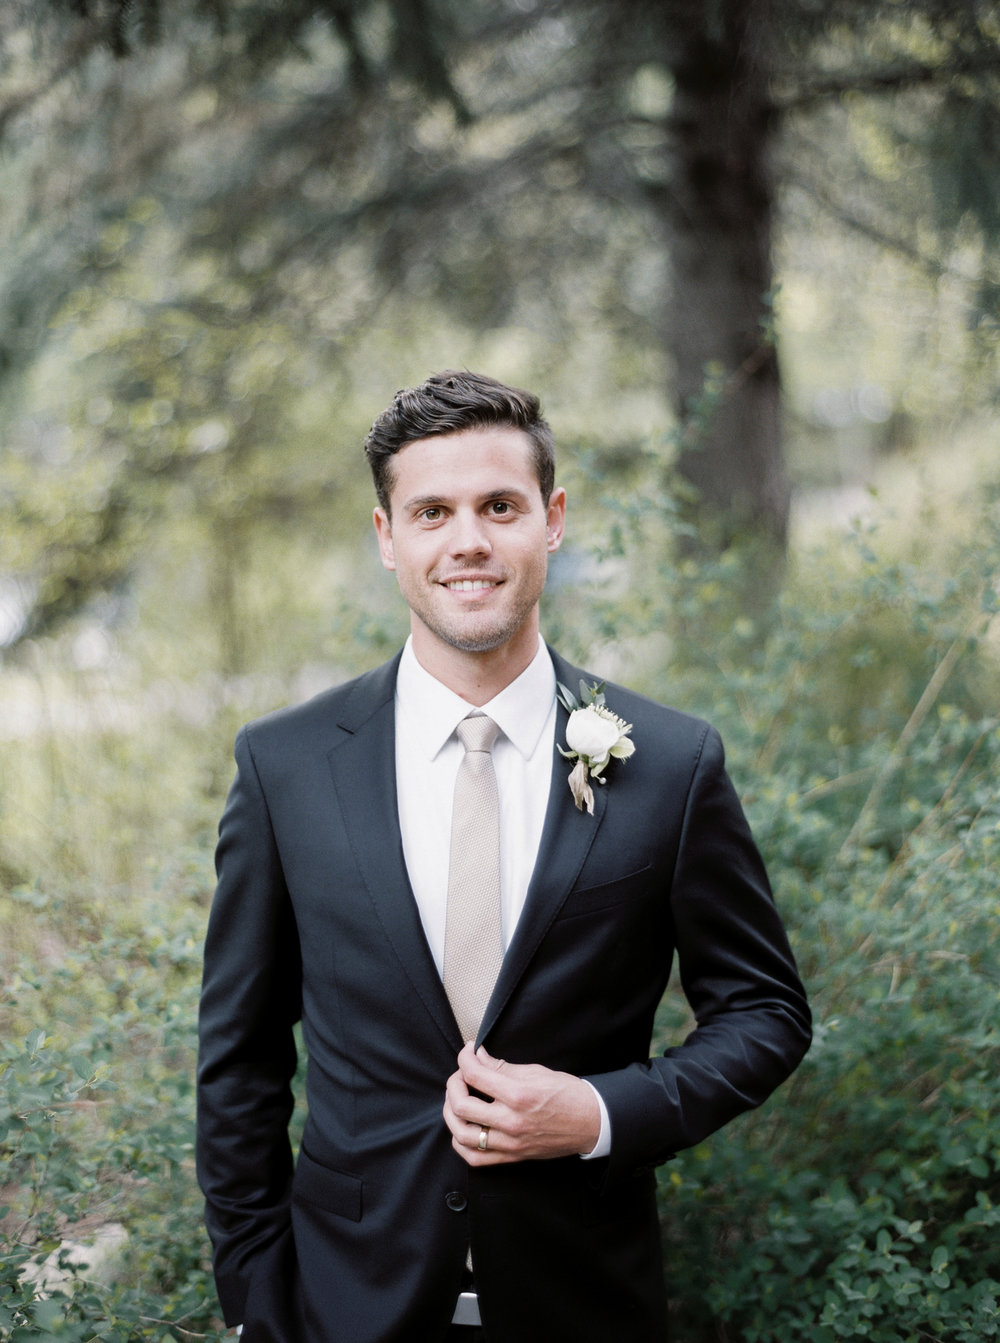 Mila Adams Louisville Lexington Kentucky Wedding Florist White Groomsmen Boutonniere